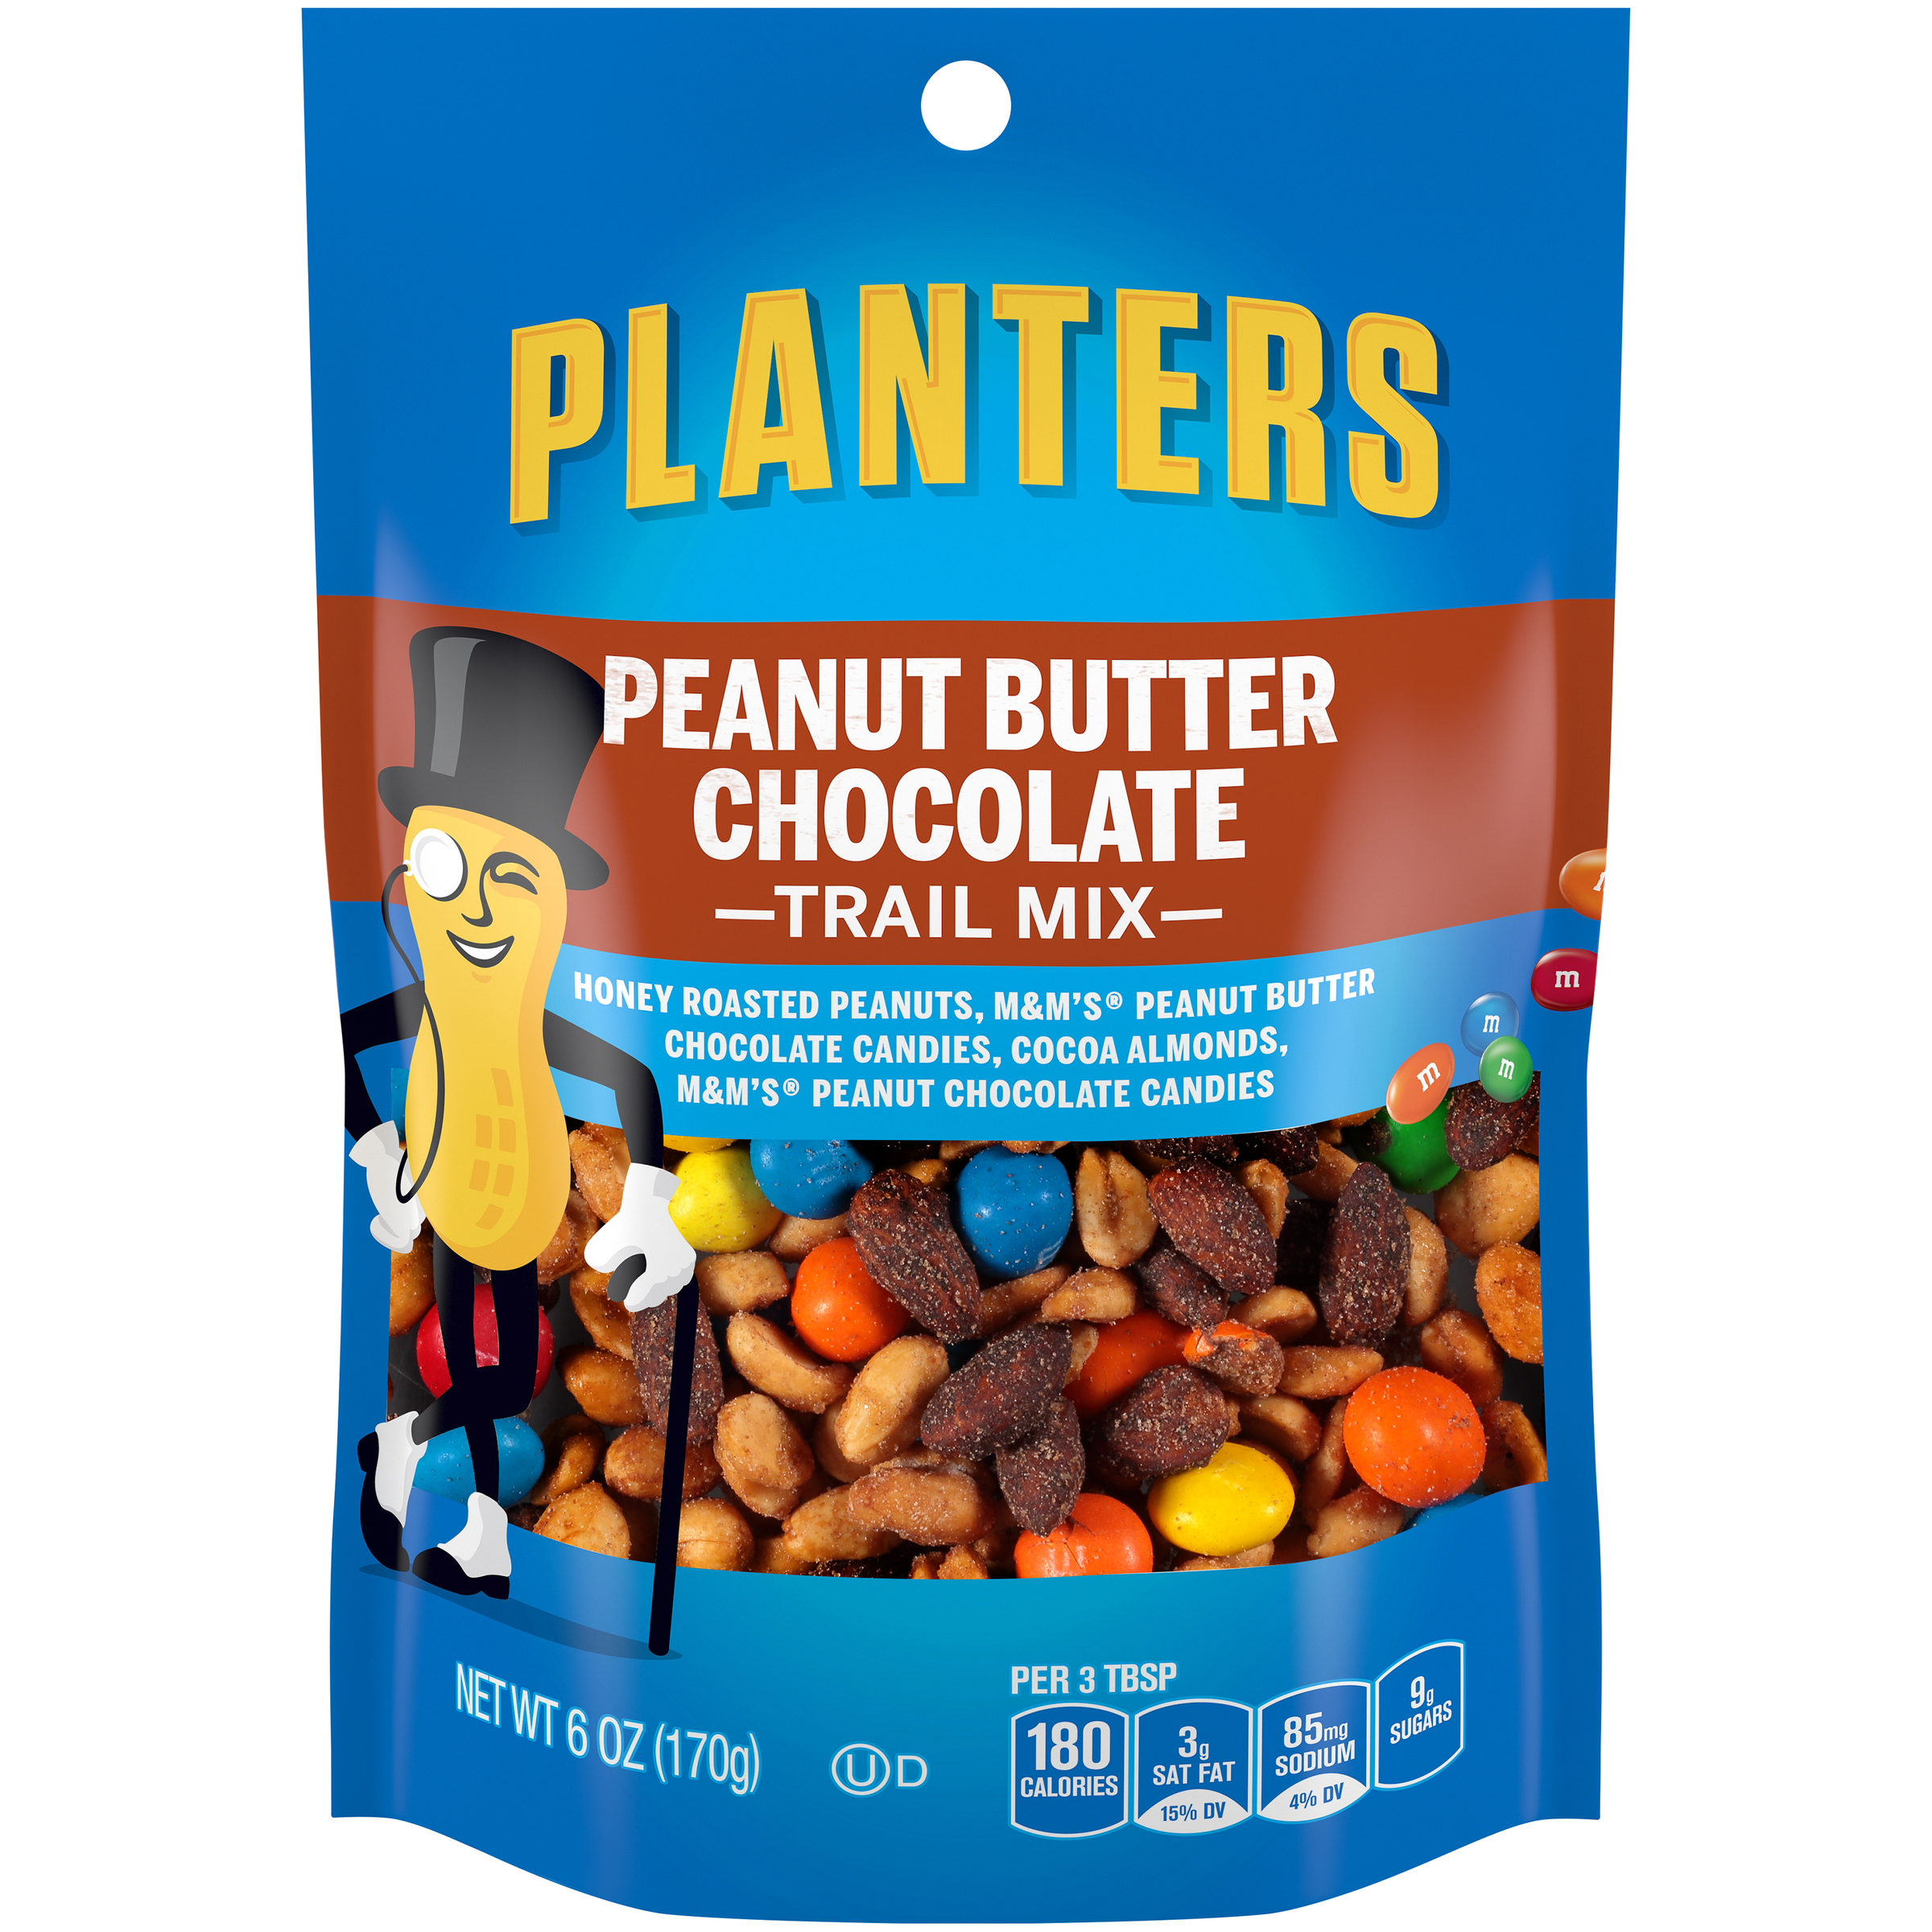 Planters Peanut Butter Chocolate Trail Mix